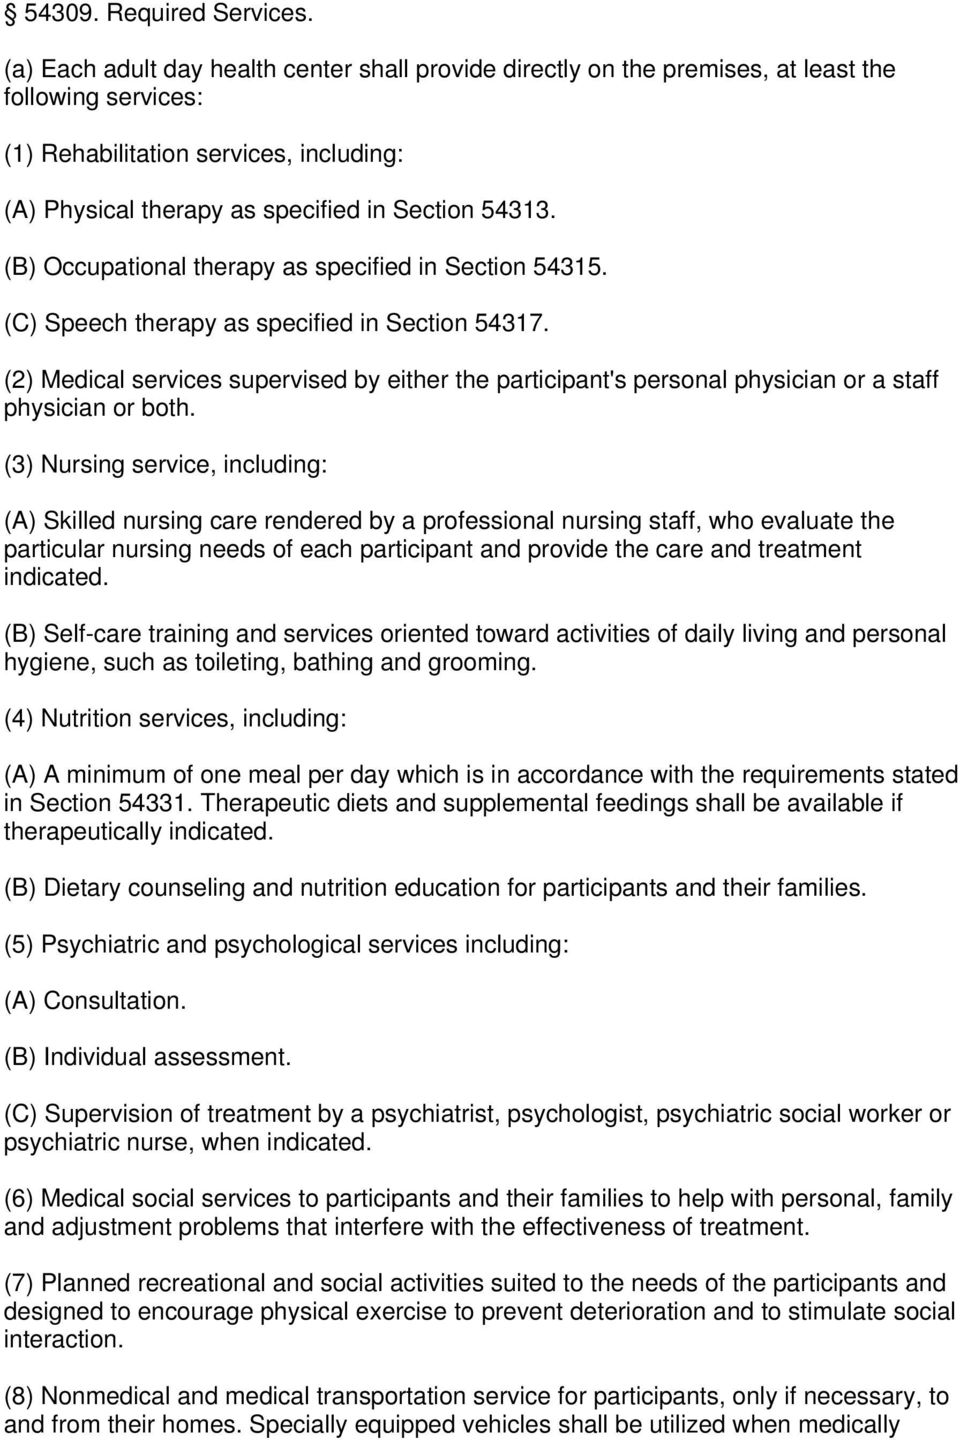 (B) Occupational therapy as specified in Section 54315. (C) Speech therapy as specified in Section 54317.